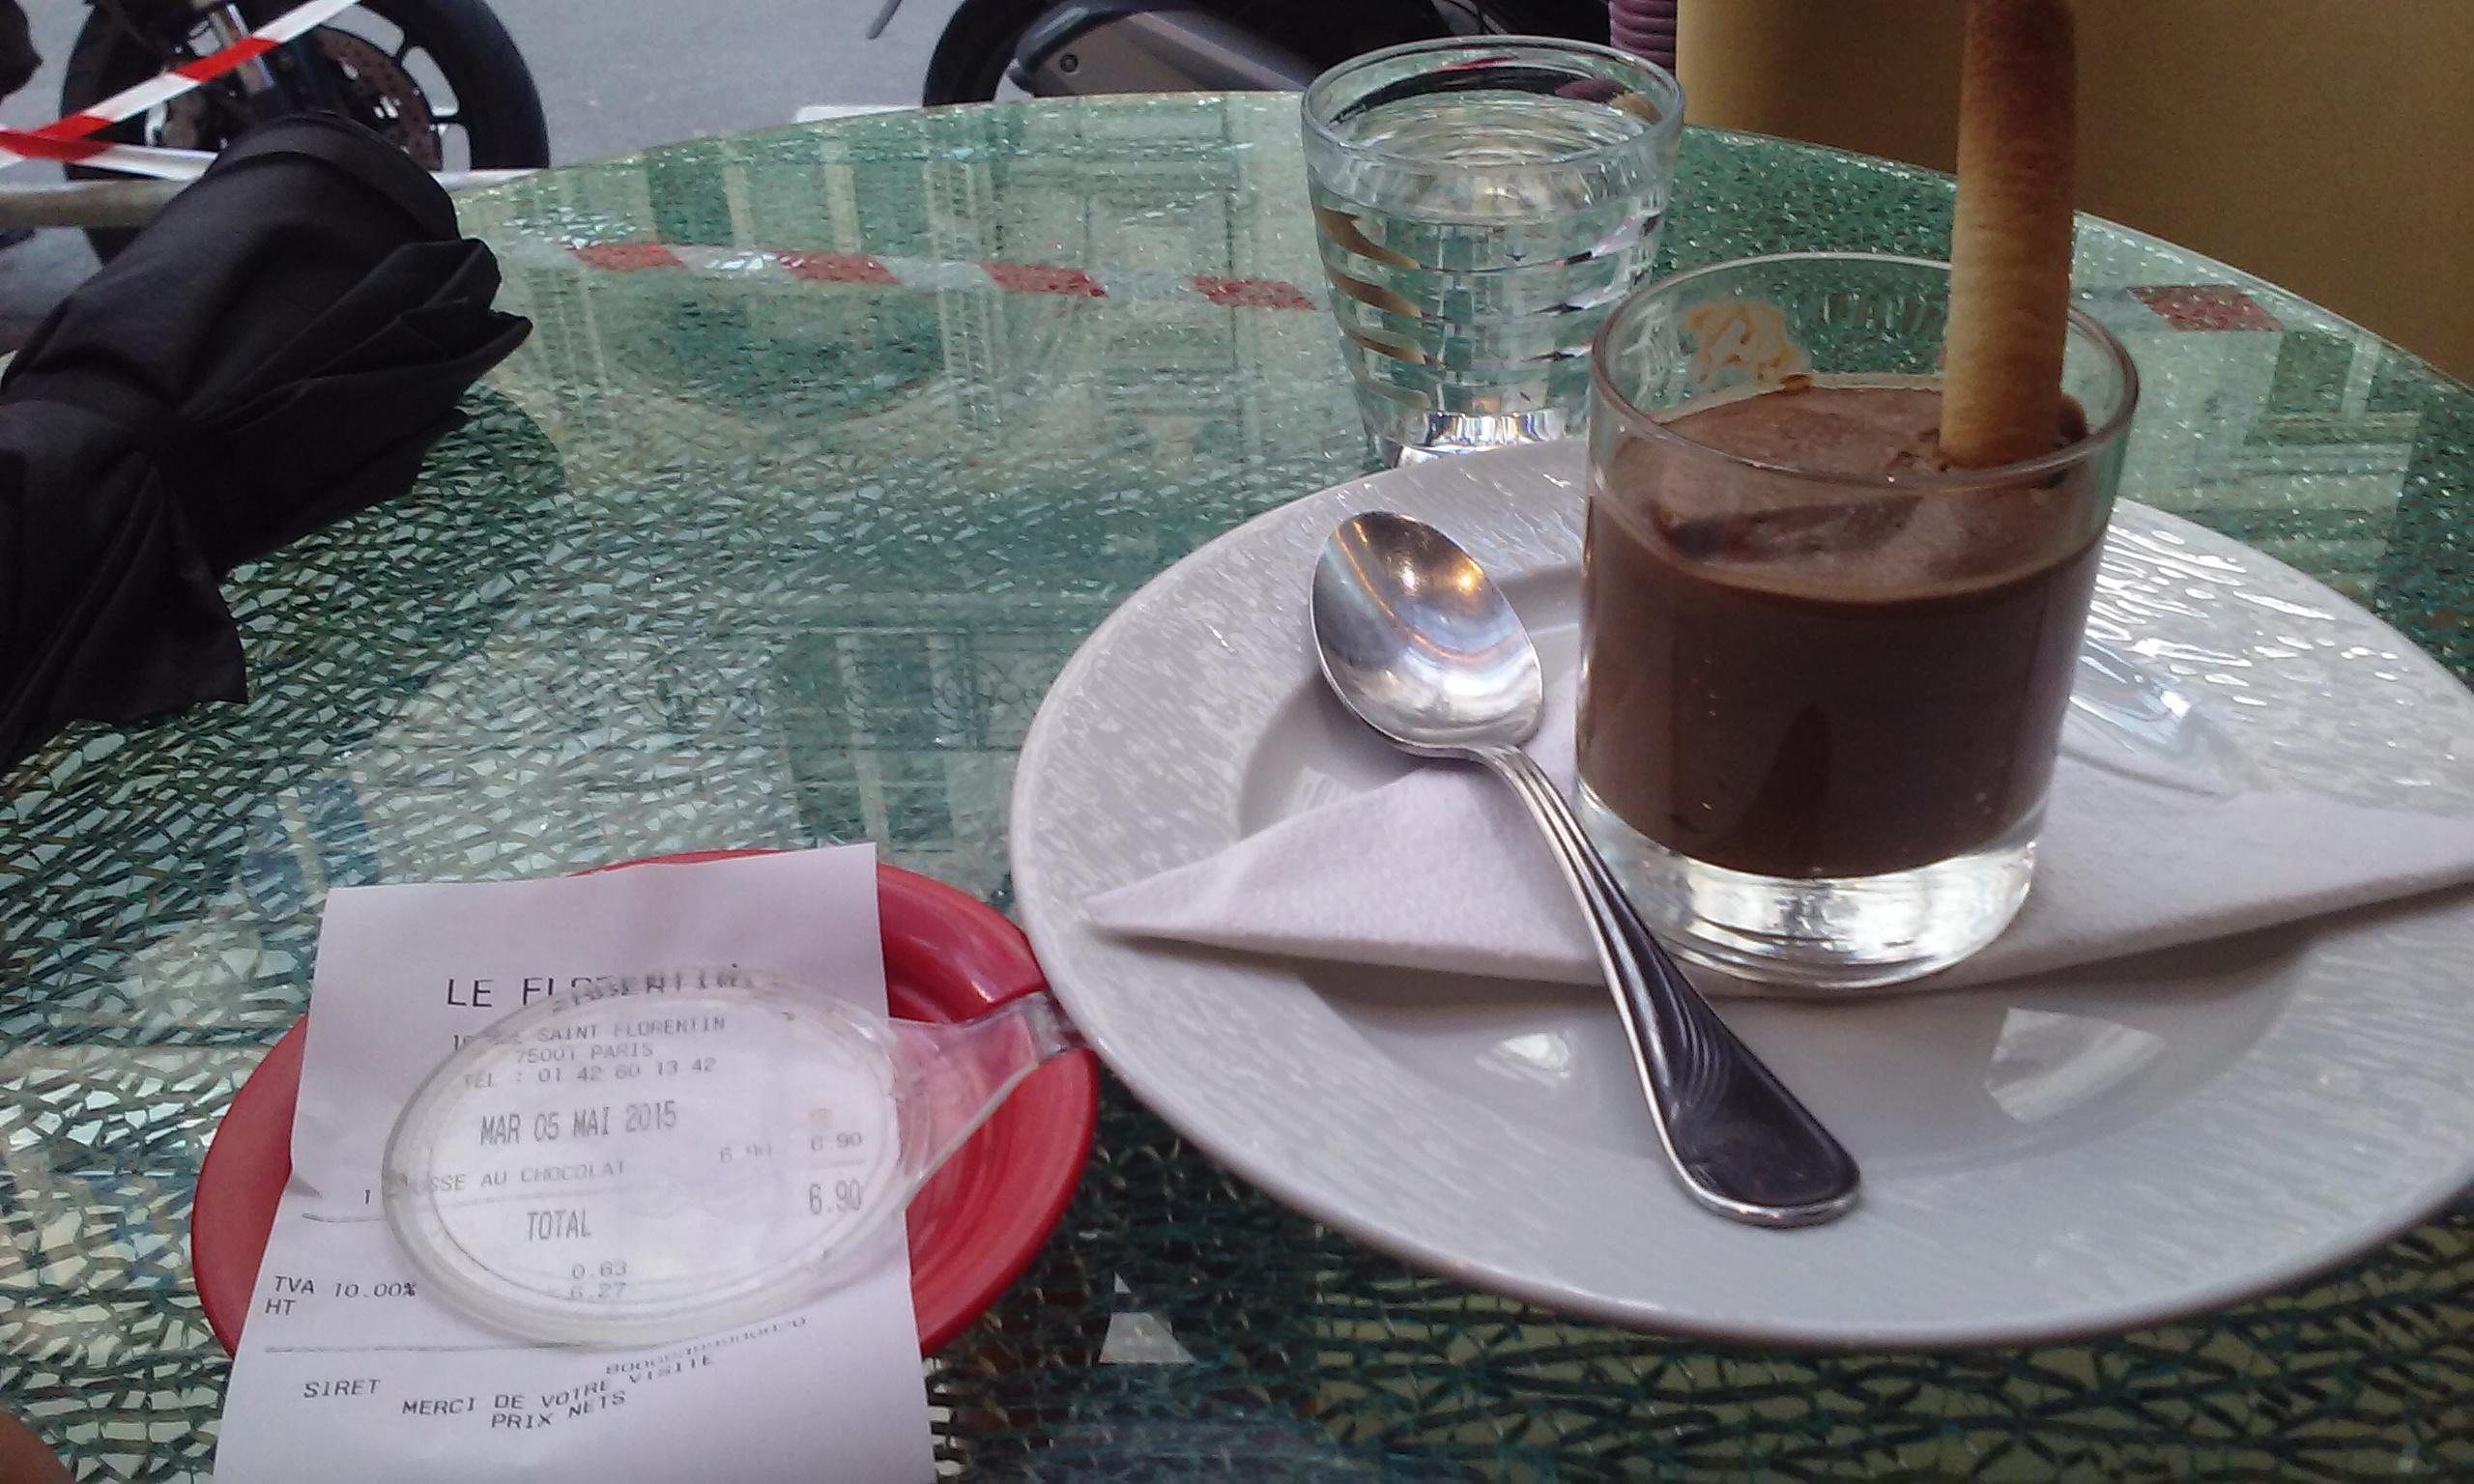 Mousse au chocolat at Le Florentin 7 euros. Light, better to try another place.